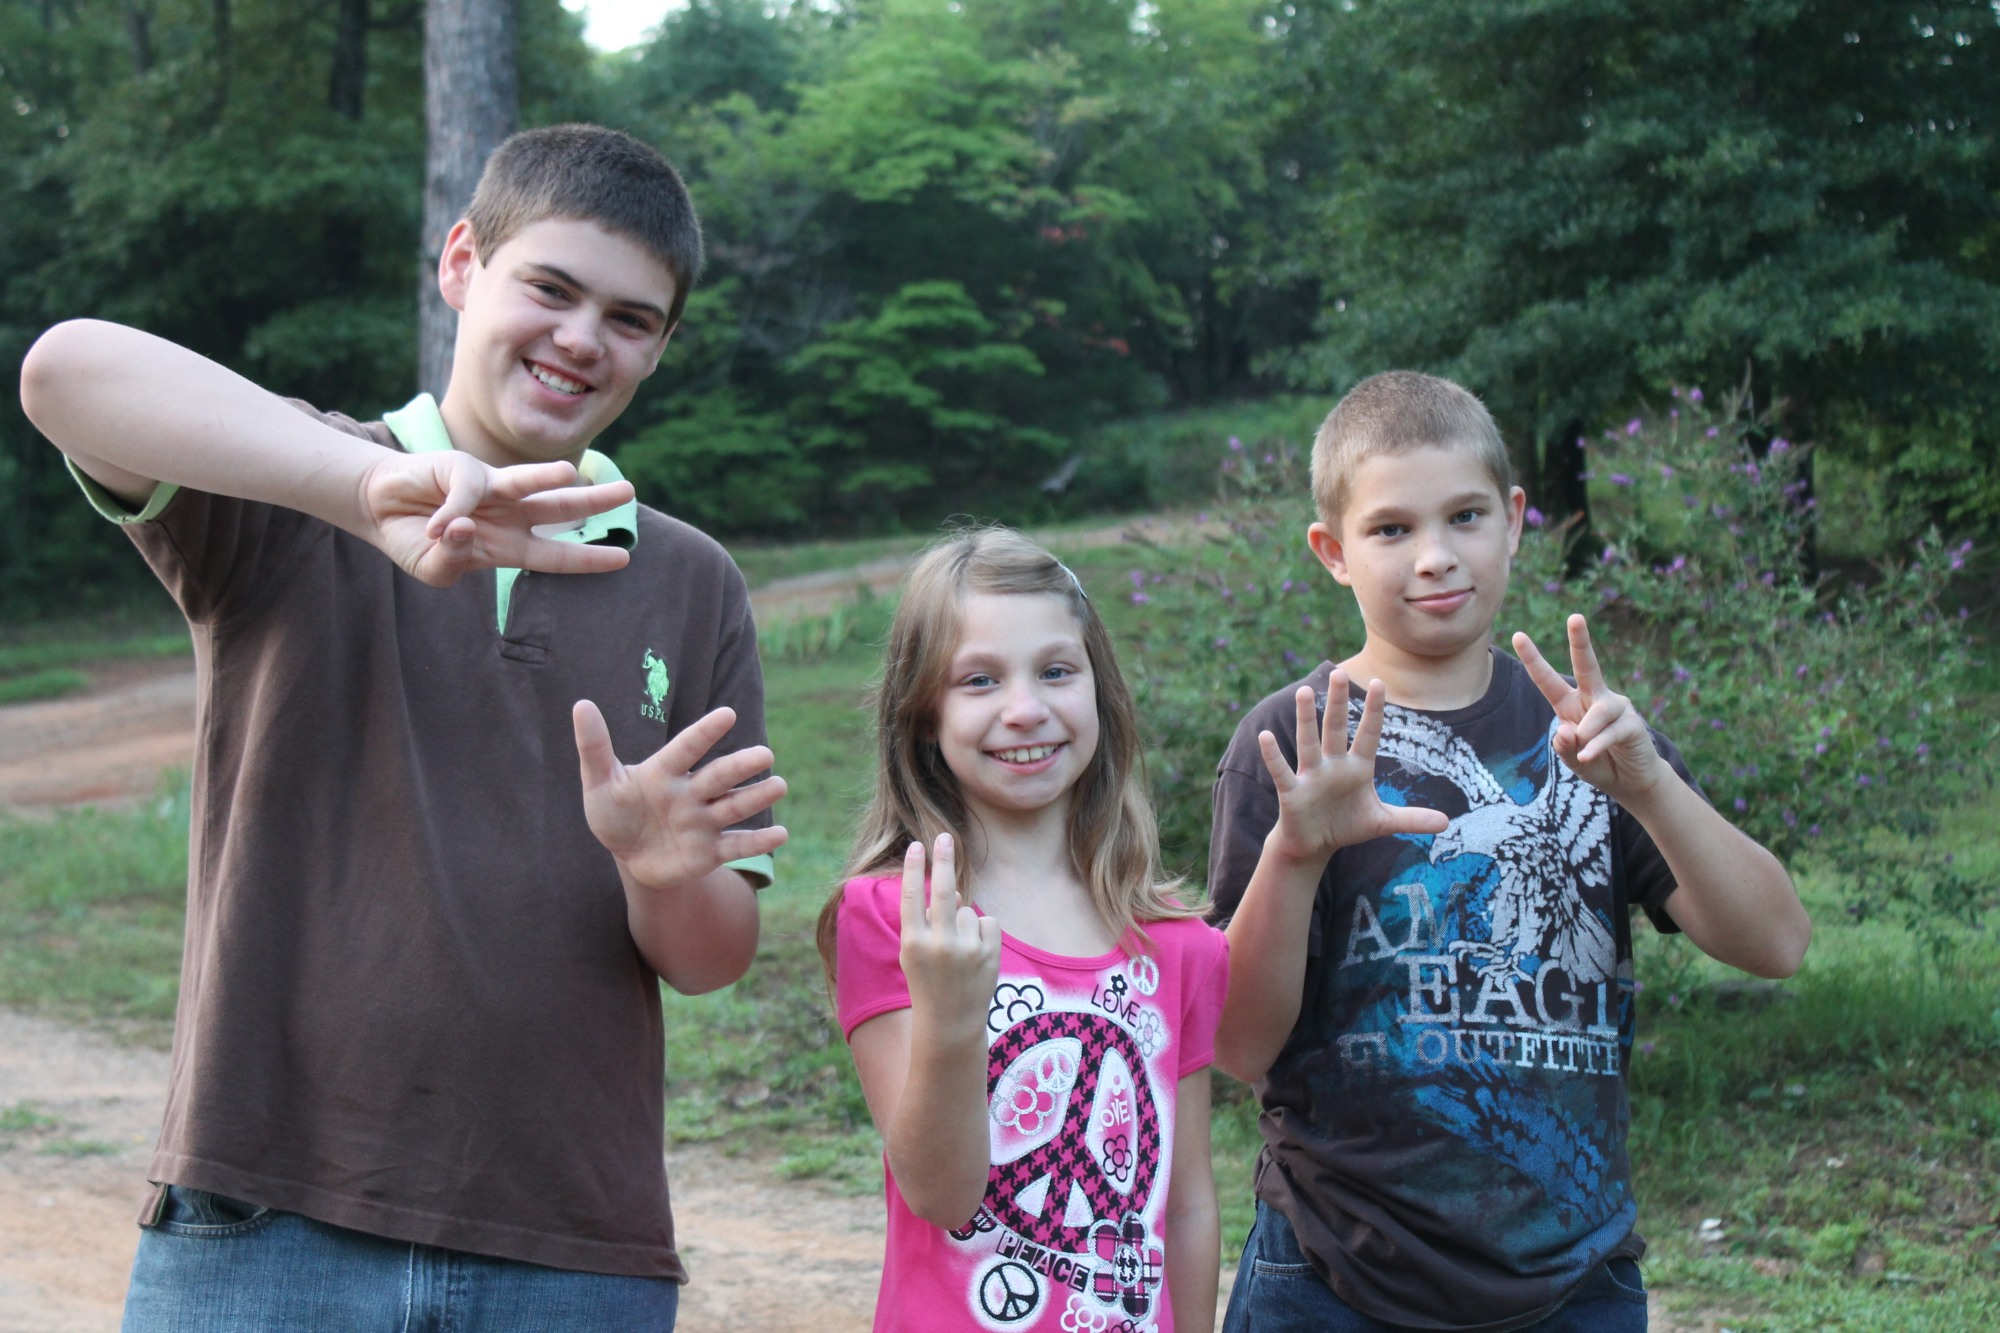 Ethan Cox 8th grade, Joshua Cox 7th grade, Hope Cox 2nd grade, Magazine School really excited for a better school year.